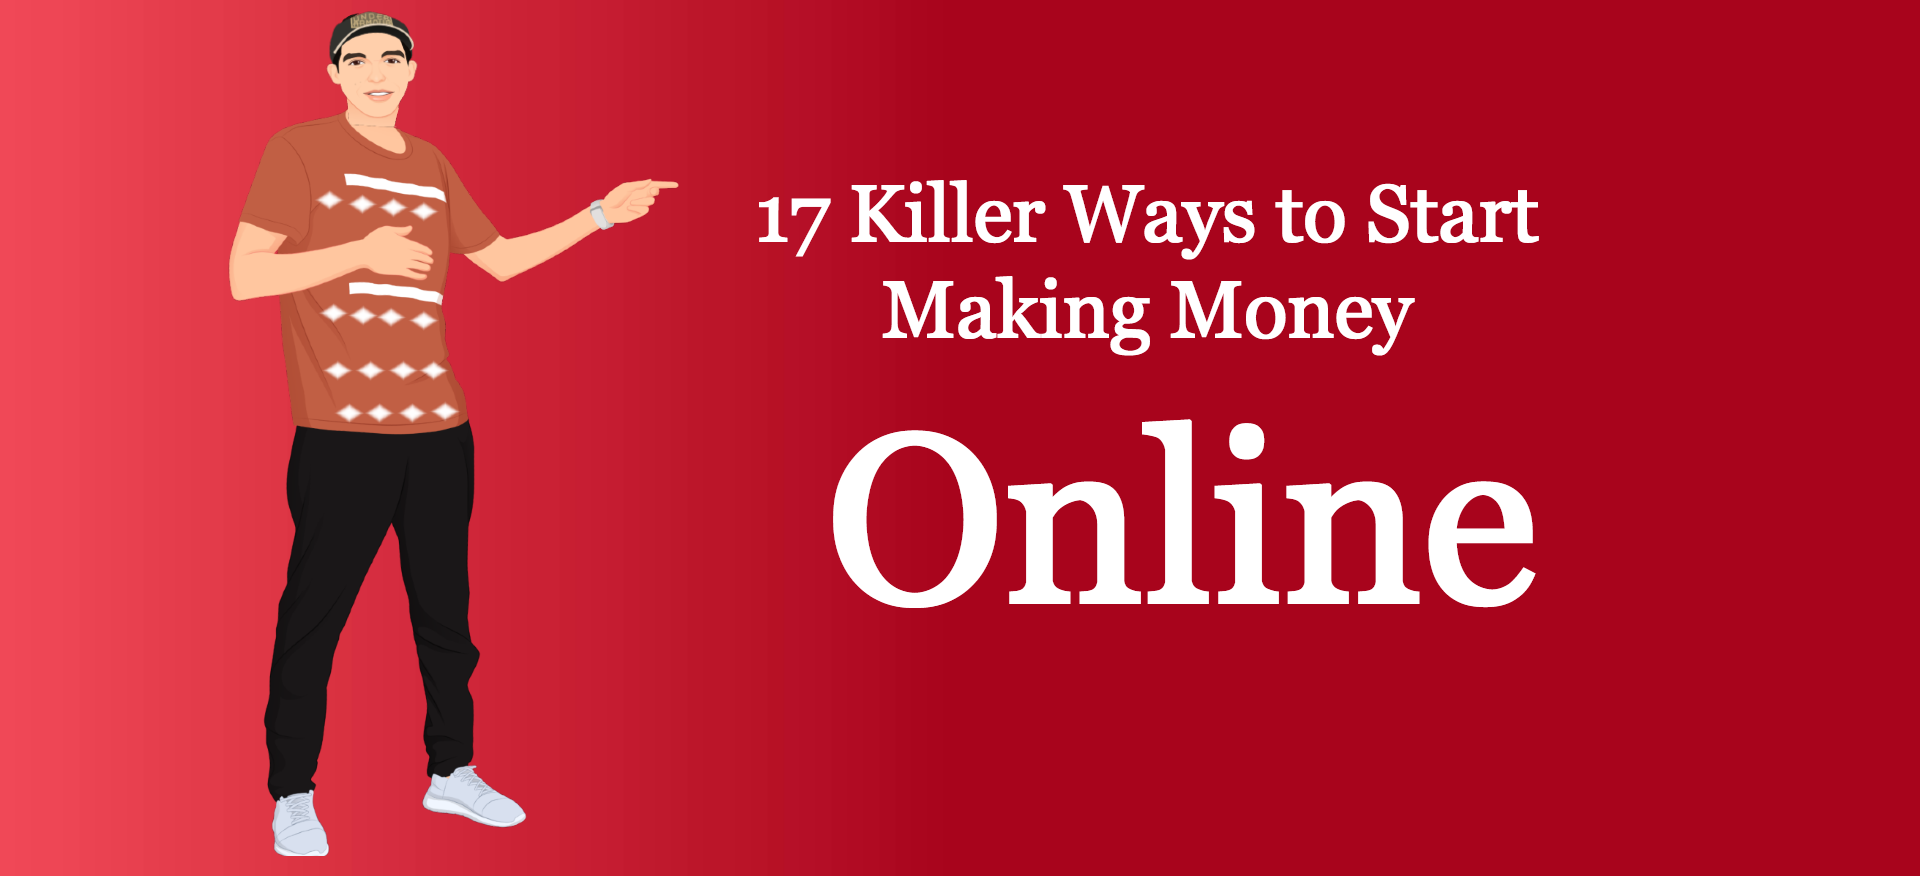 17 killer ways to start making money online